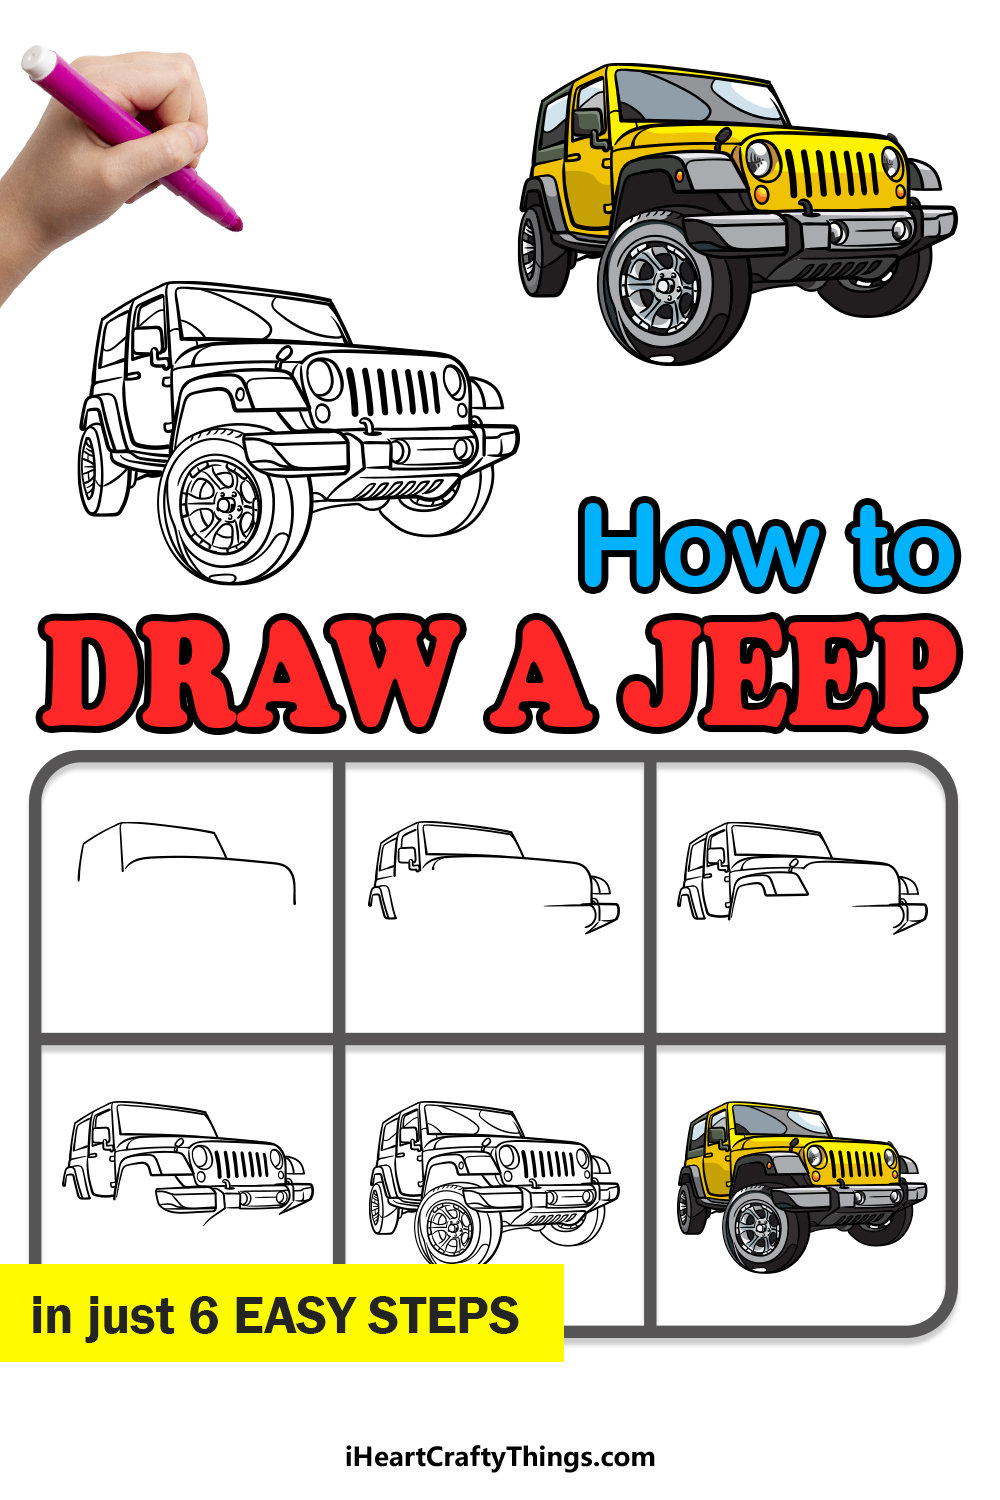 how to draw a jeep in 6 easy steps